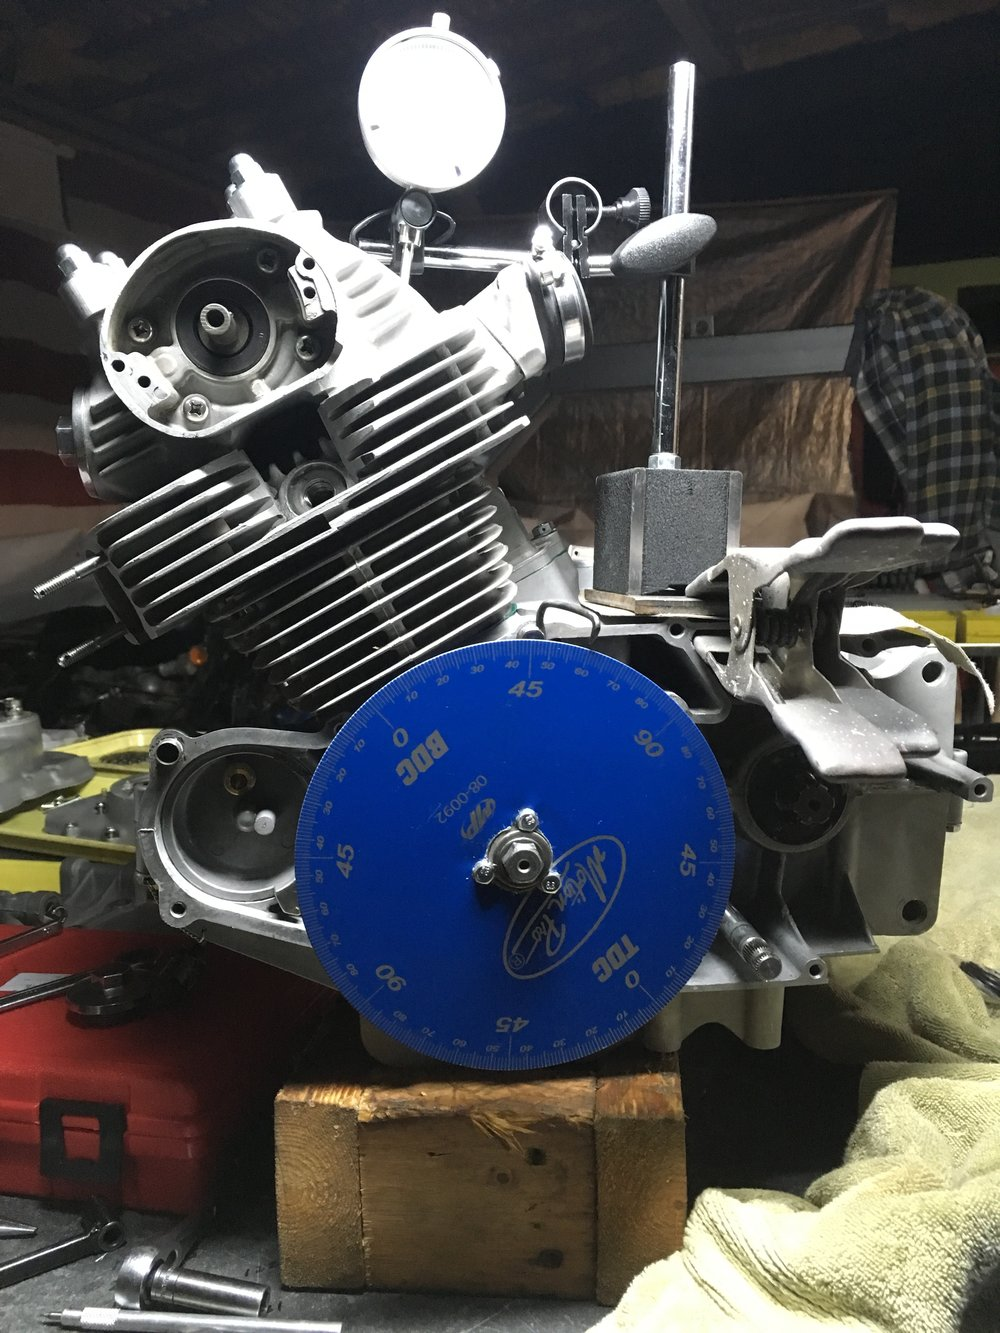 Third time this engine has been out of the bike, one last check of the cam degree, and it is ready for full assembly. Thanks to Tucker Rocky and Motion Pro for the degree wheel and throttle on the bike.